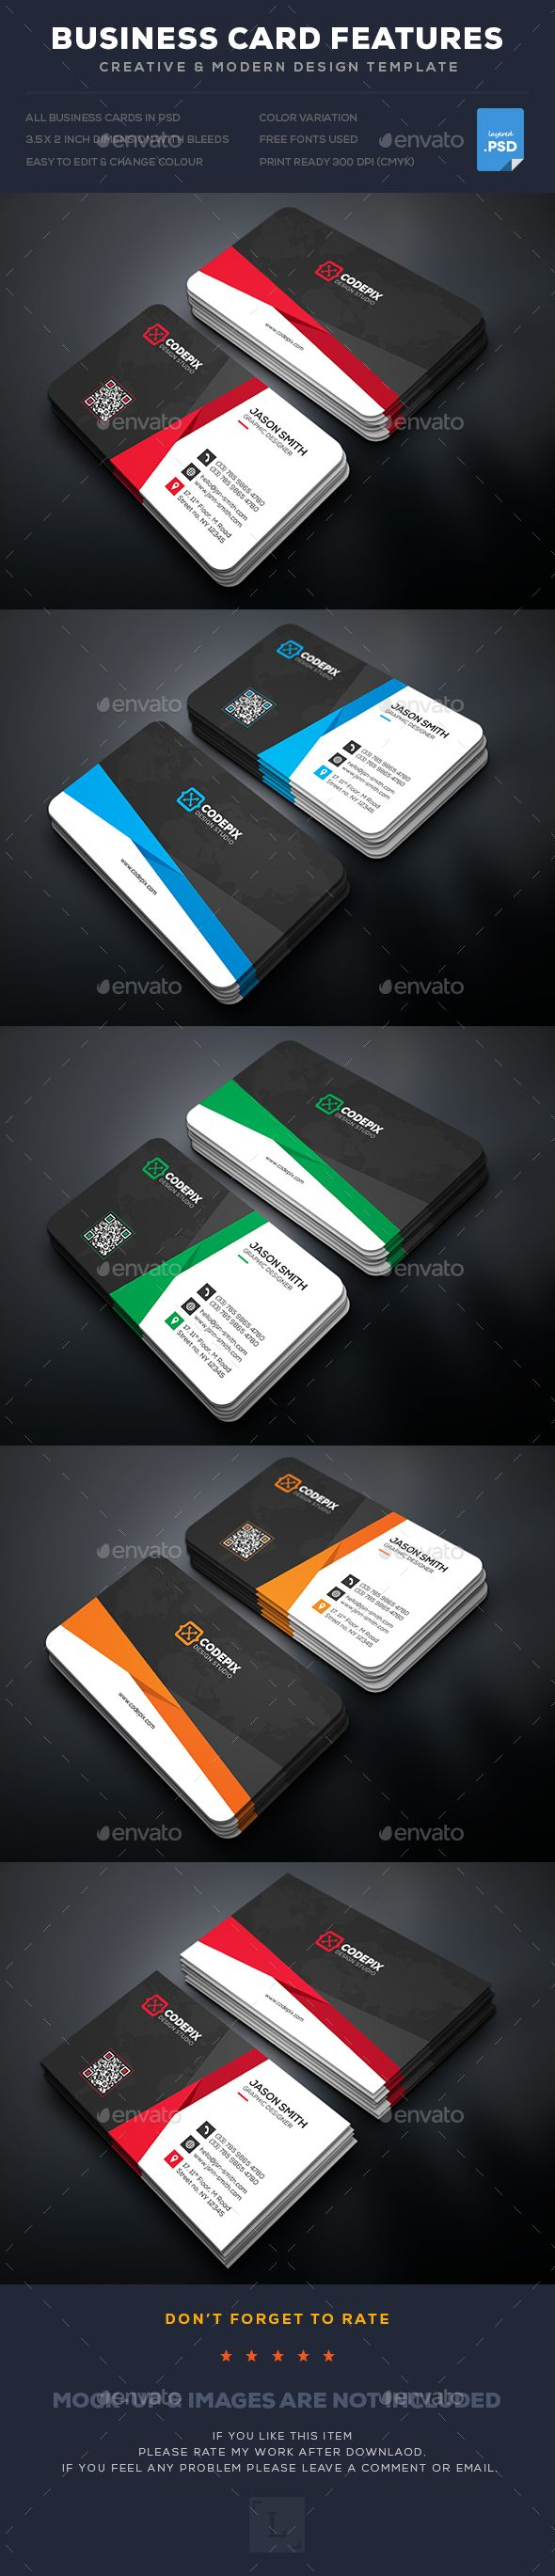 The 414 best Modern Business Cards images on Pinterest | Business ...